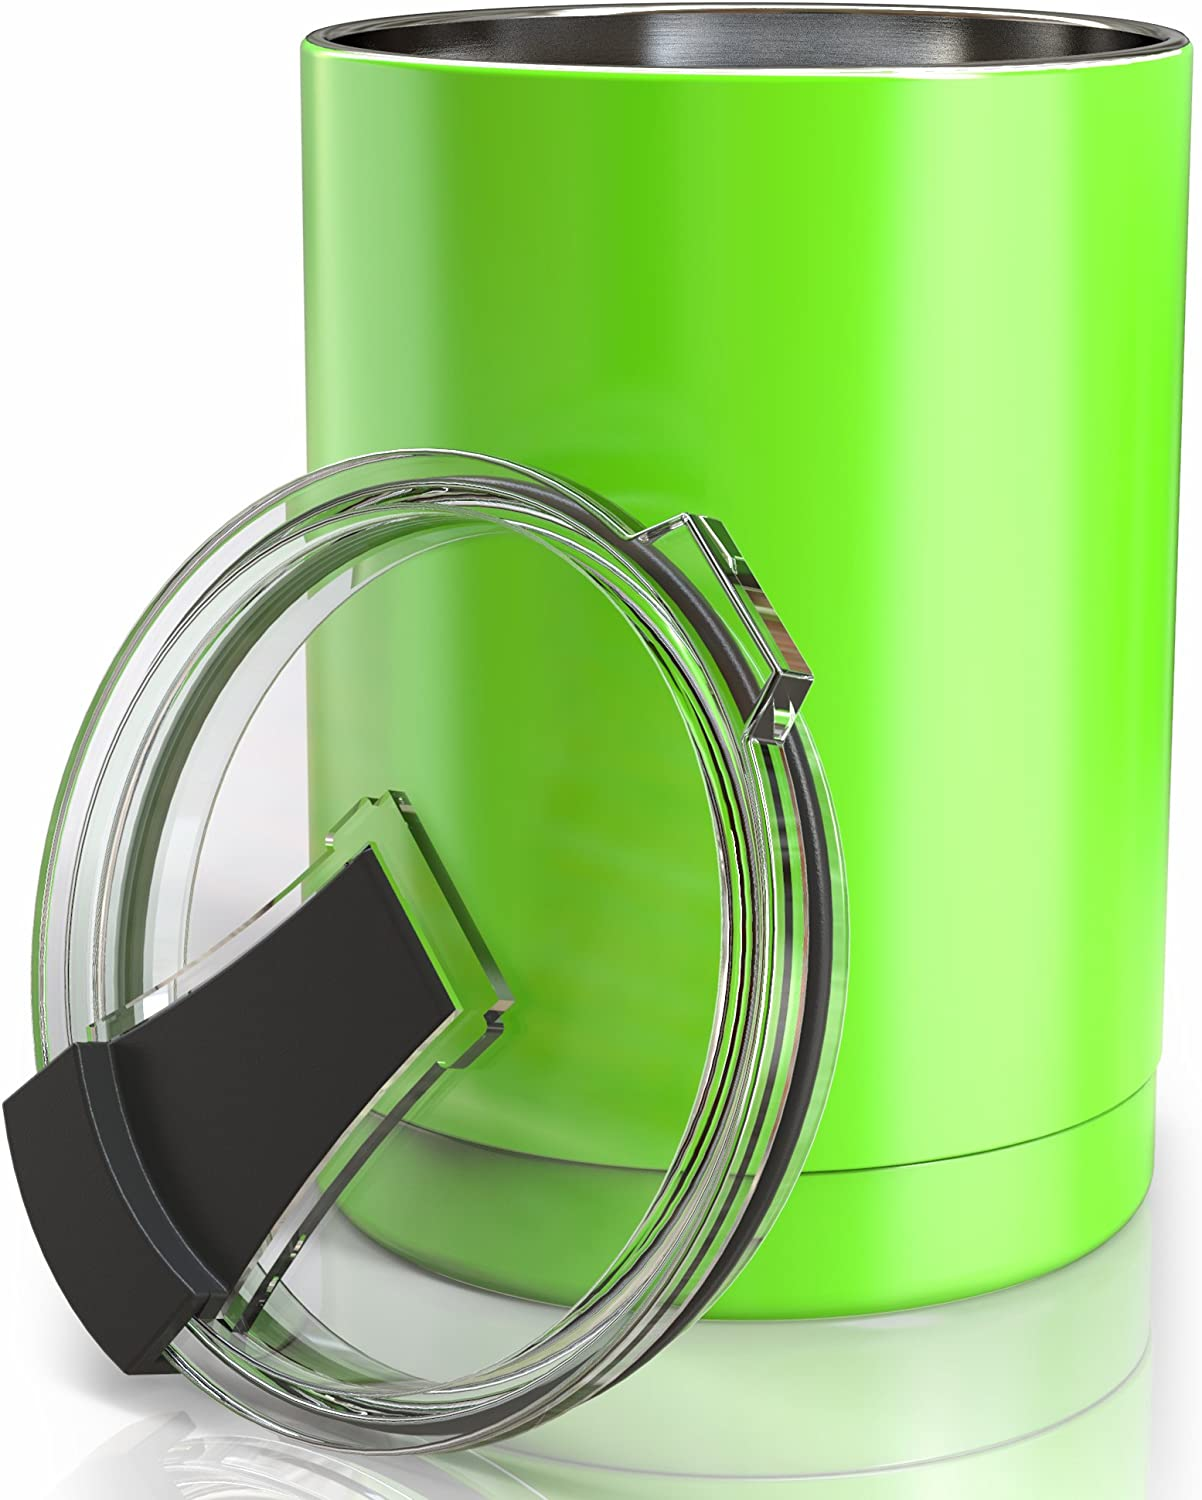 Lowball 10 oz Tumbler Vacuum Green Apple Insulated Stainless Steel